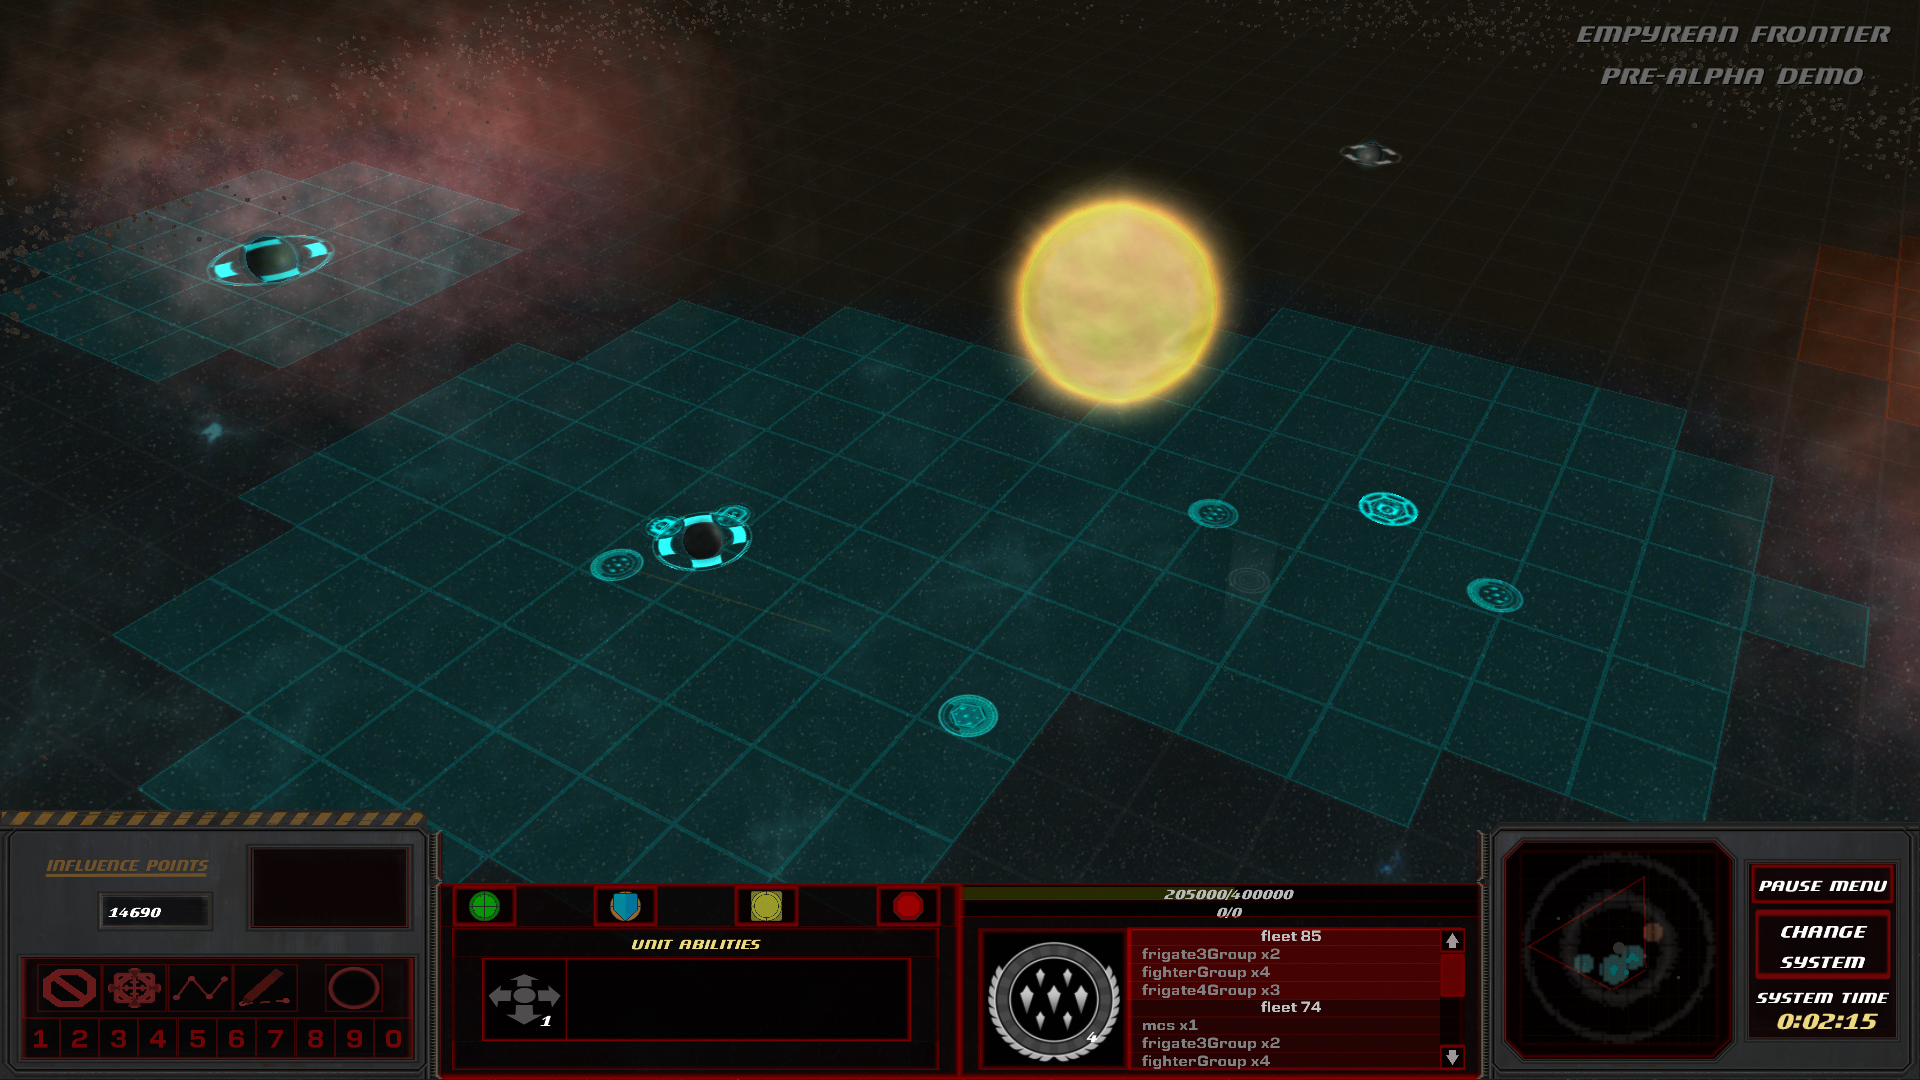 Solar System image - Empyrean Frontier - Indie DB